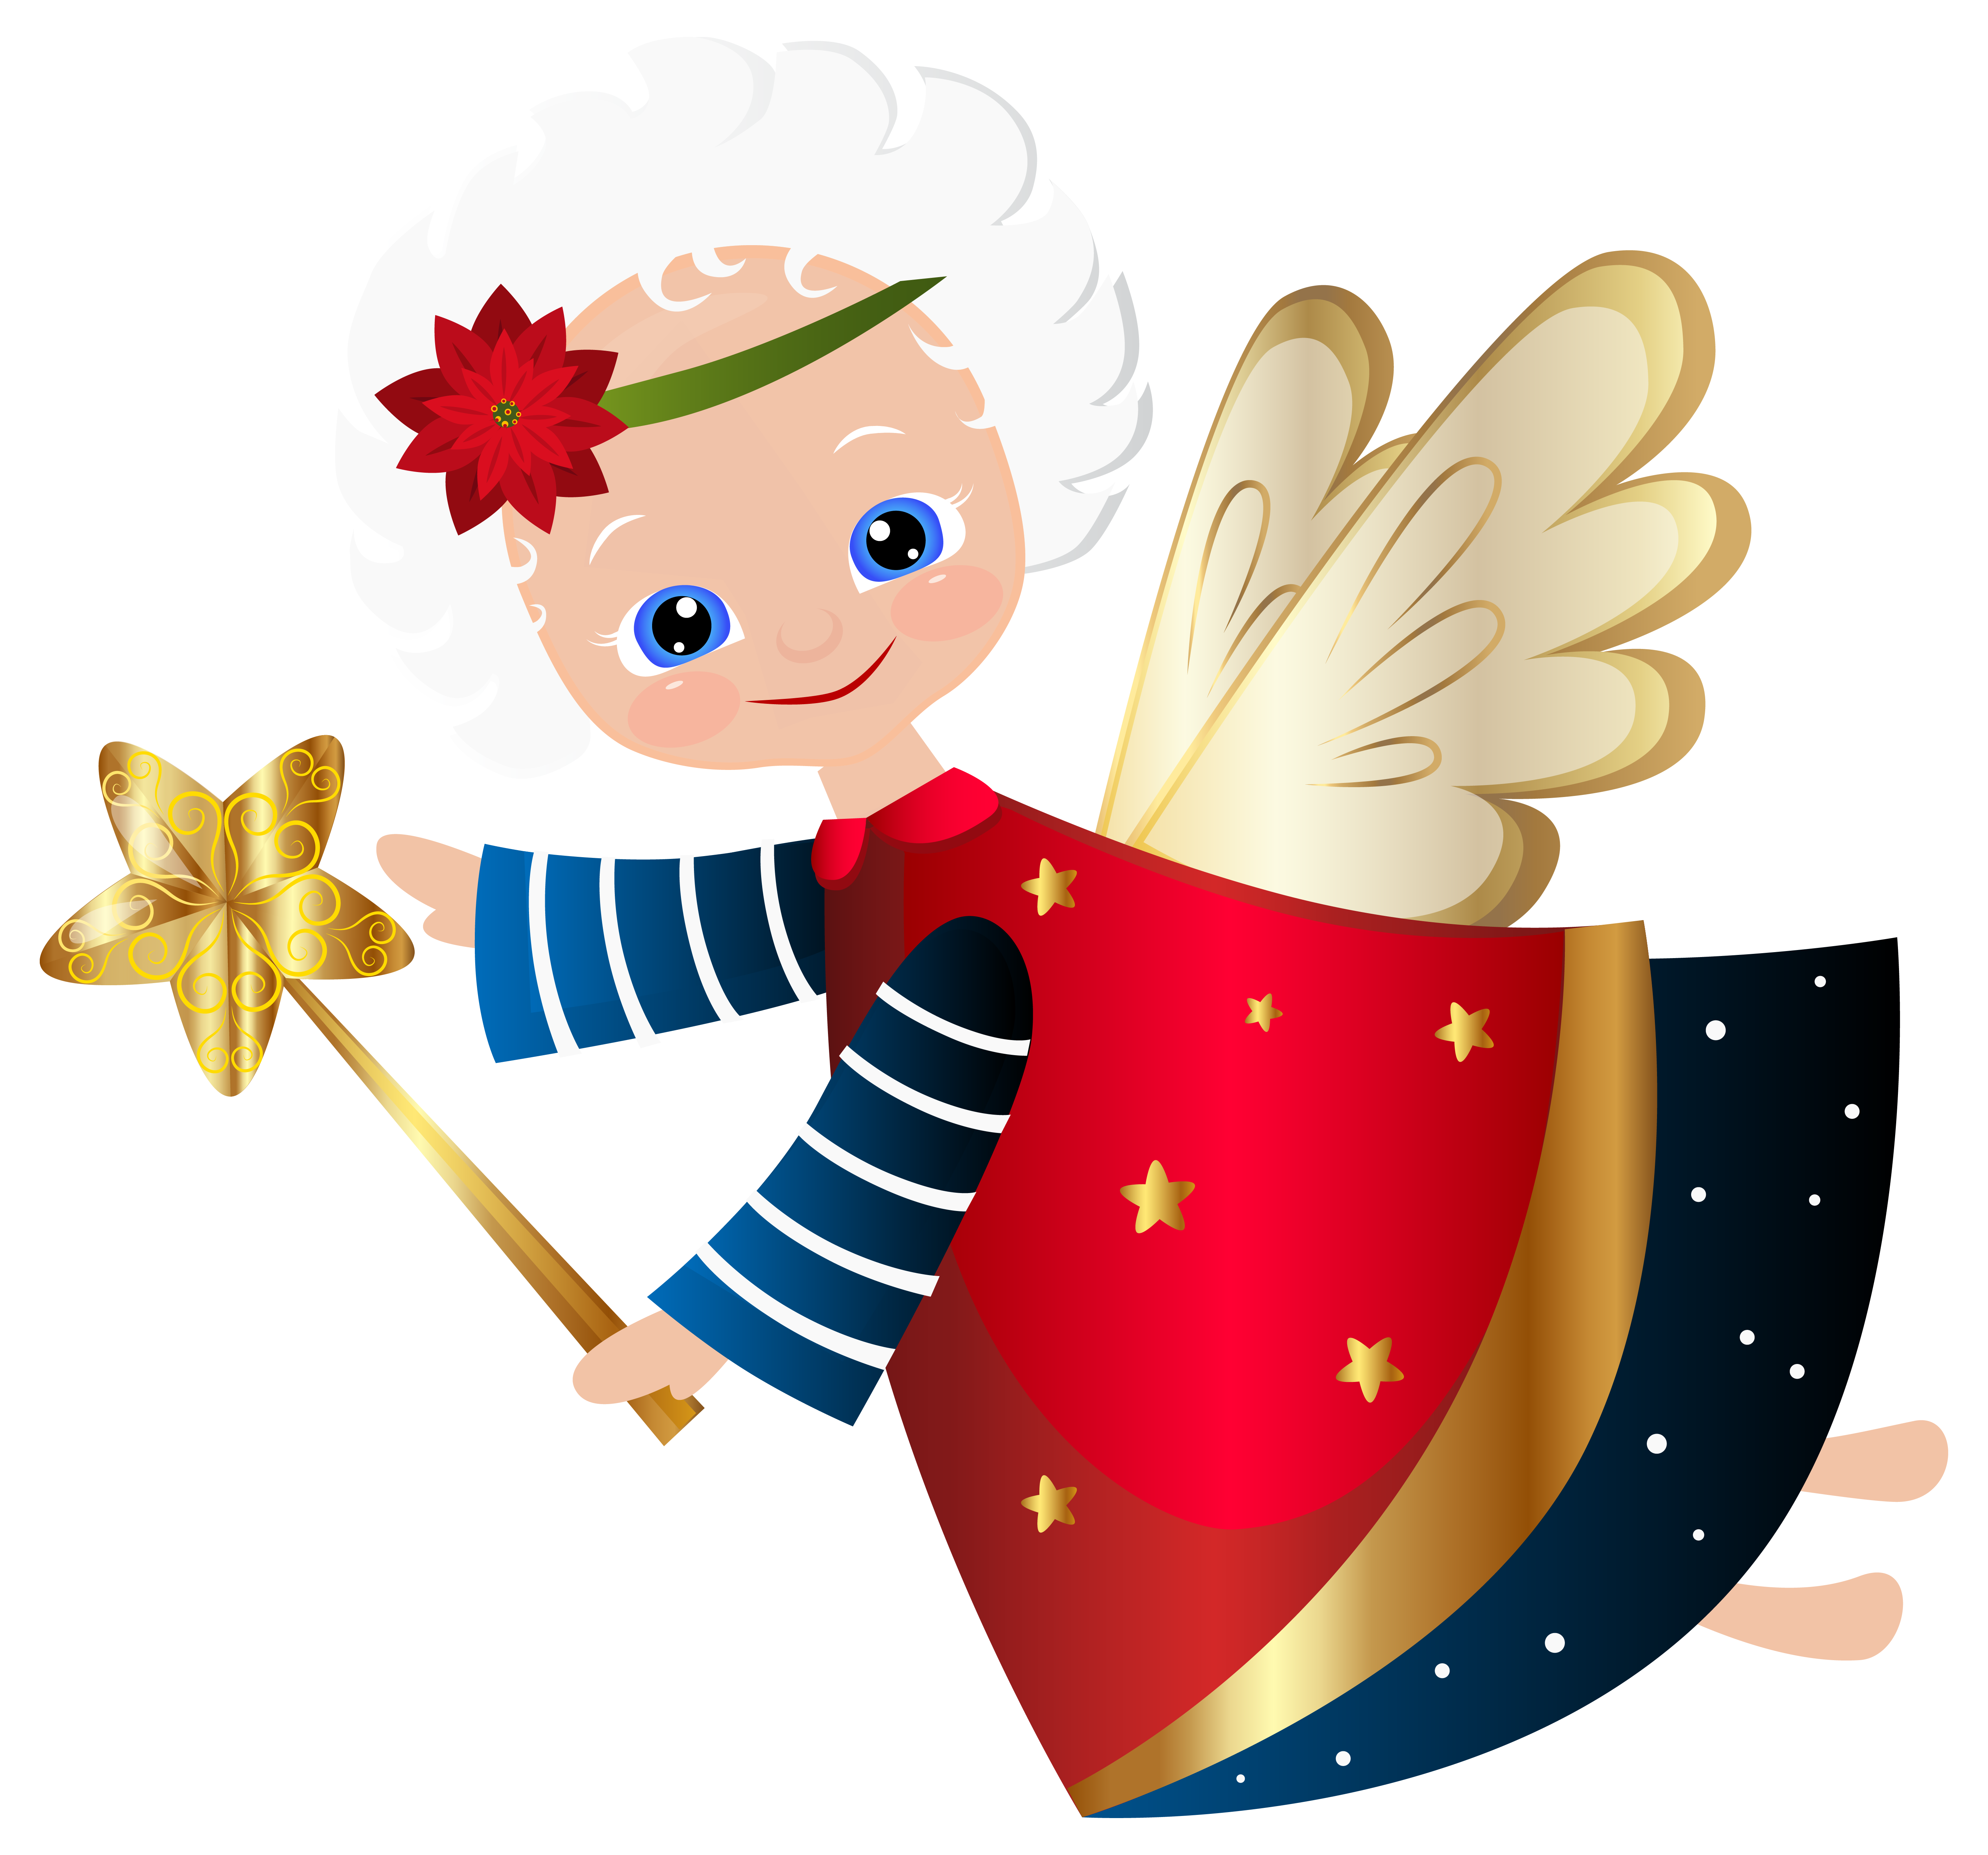 Christmas angel png. Cute transparent clip art